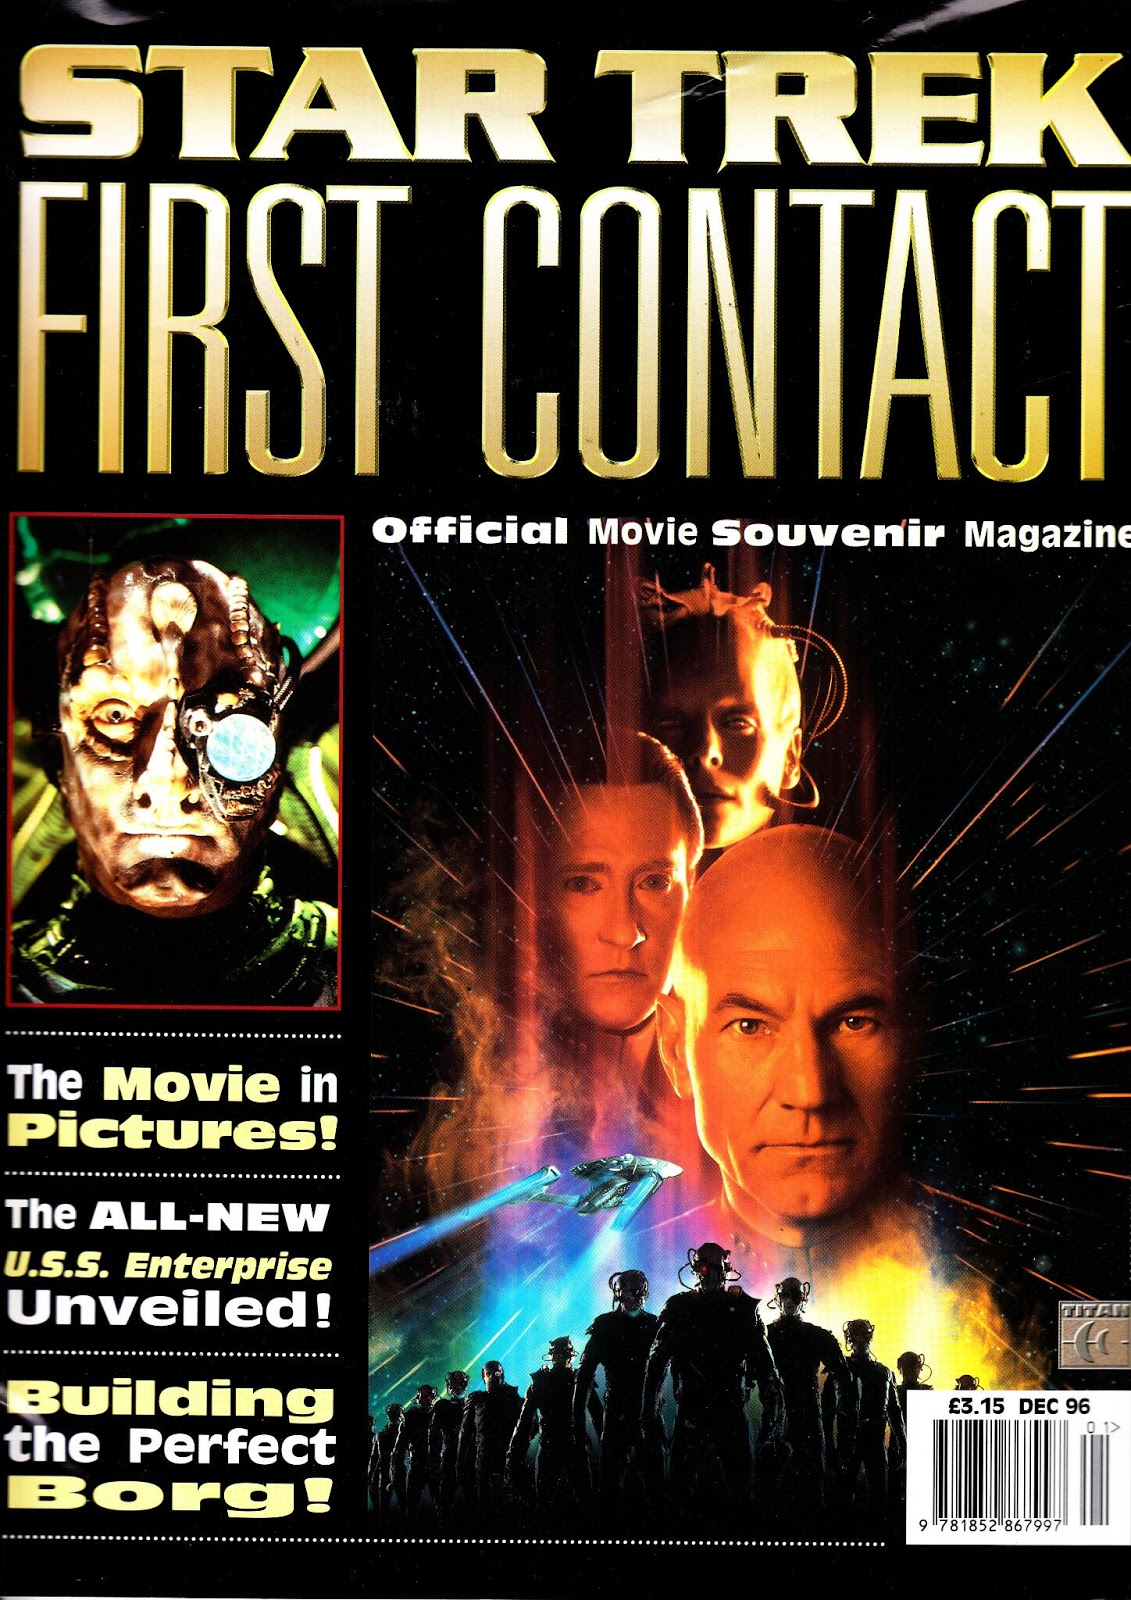 Star Trek: First Contact - Official Movie Souvenir Magazine | Memory Alpha | FANDOM powered by Wikia